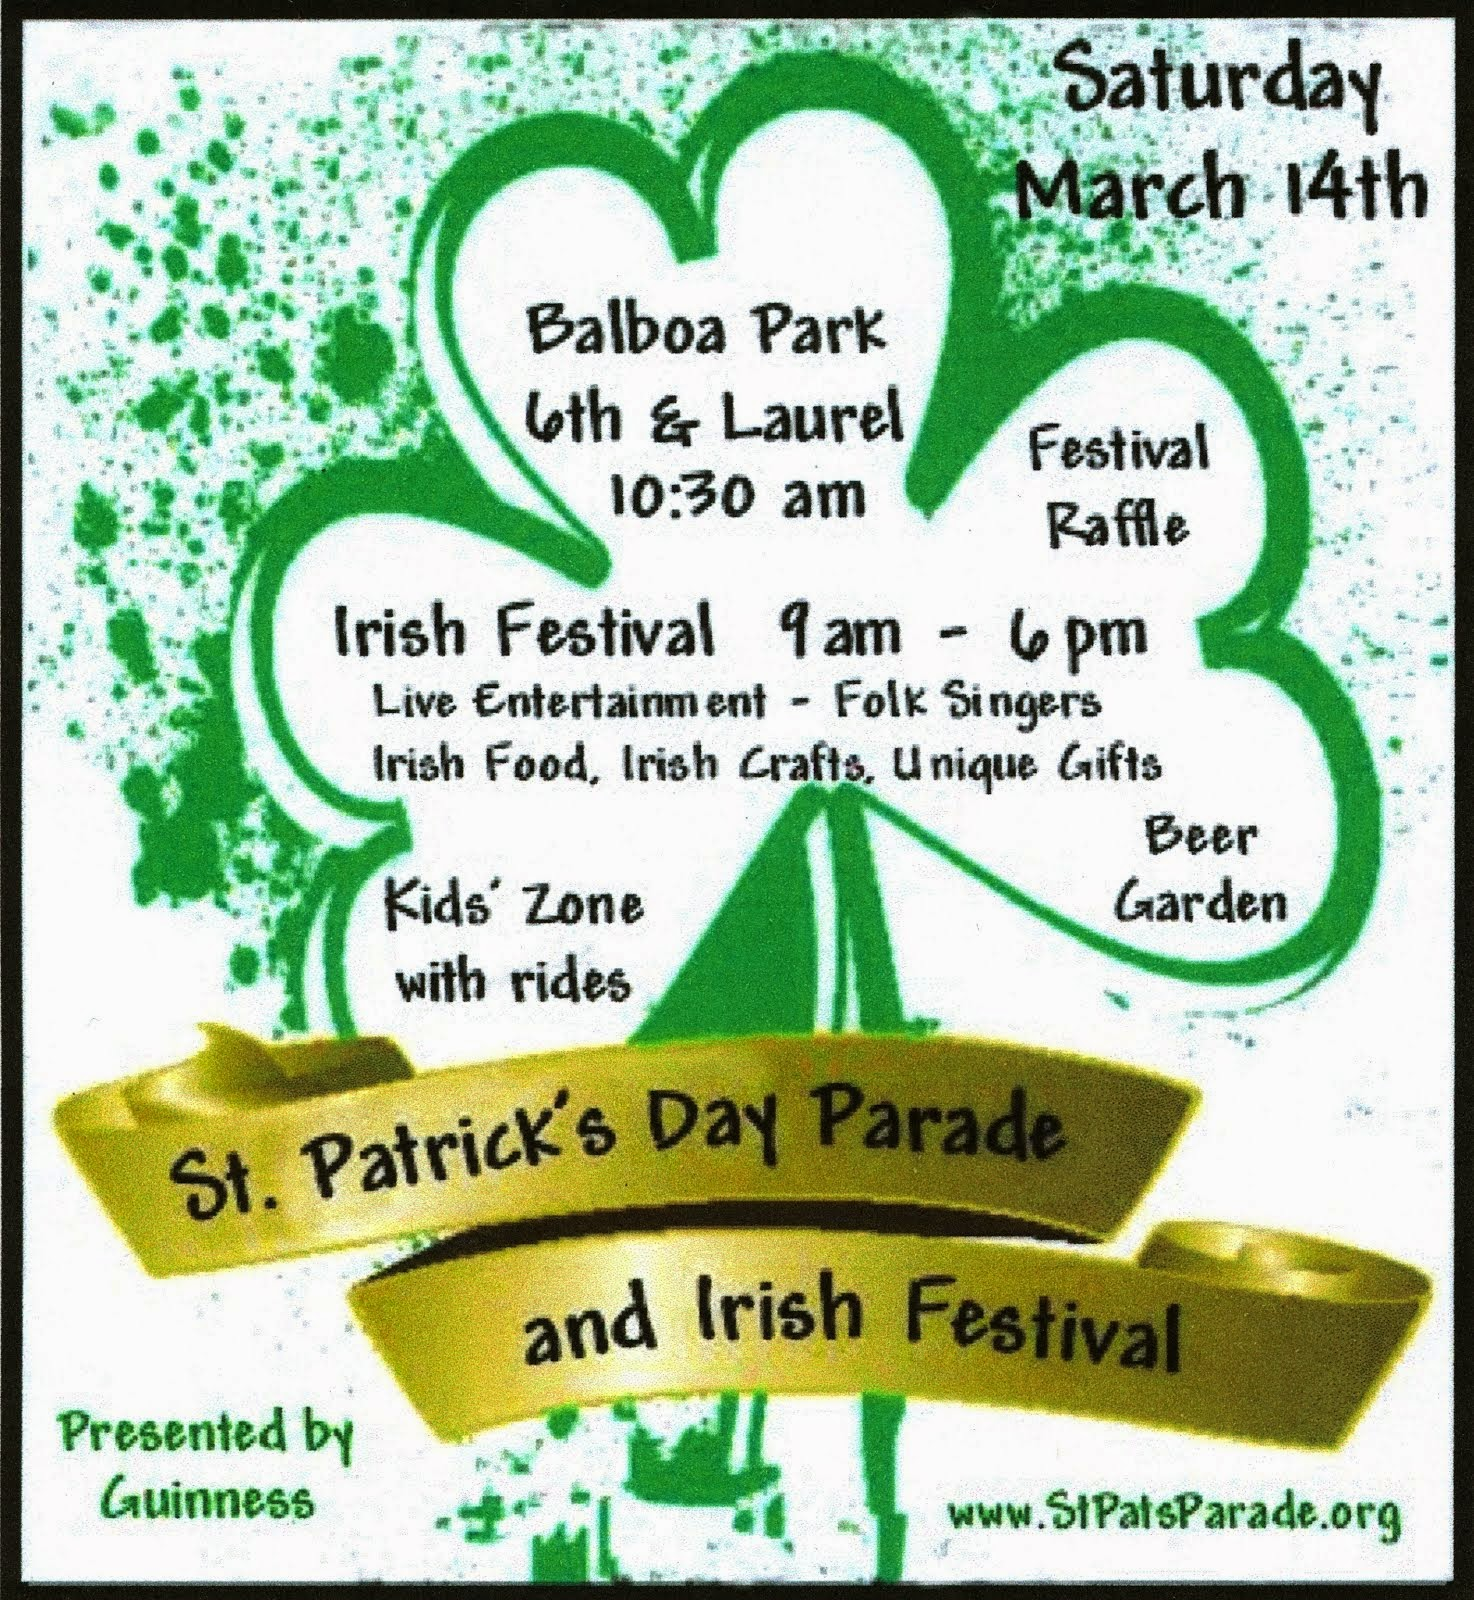 35th Annual St. Patrick's Day Parade & Irish Festival